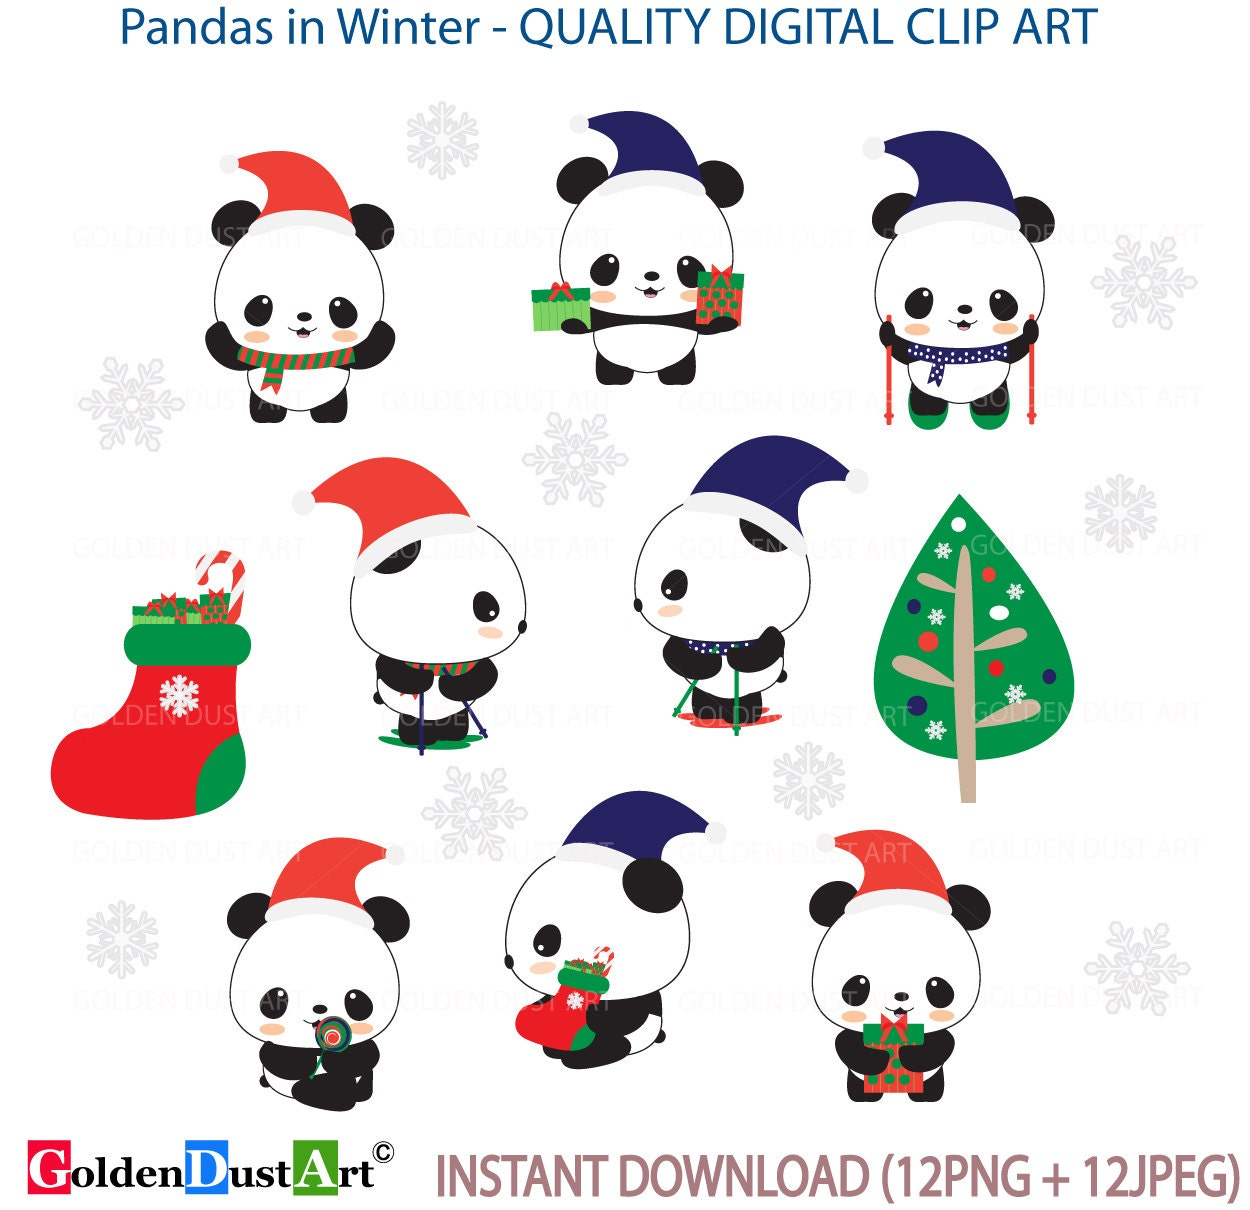 clipart panda winter - photo #42